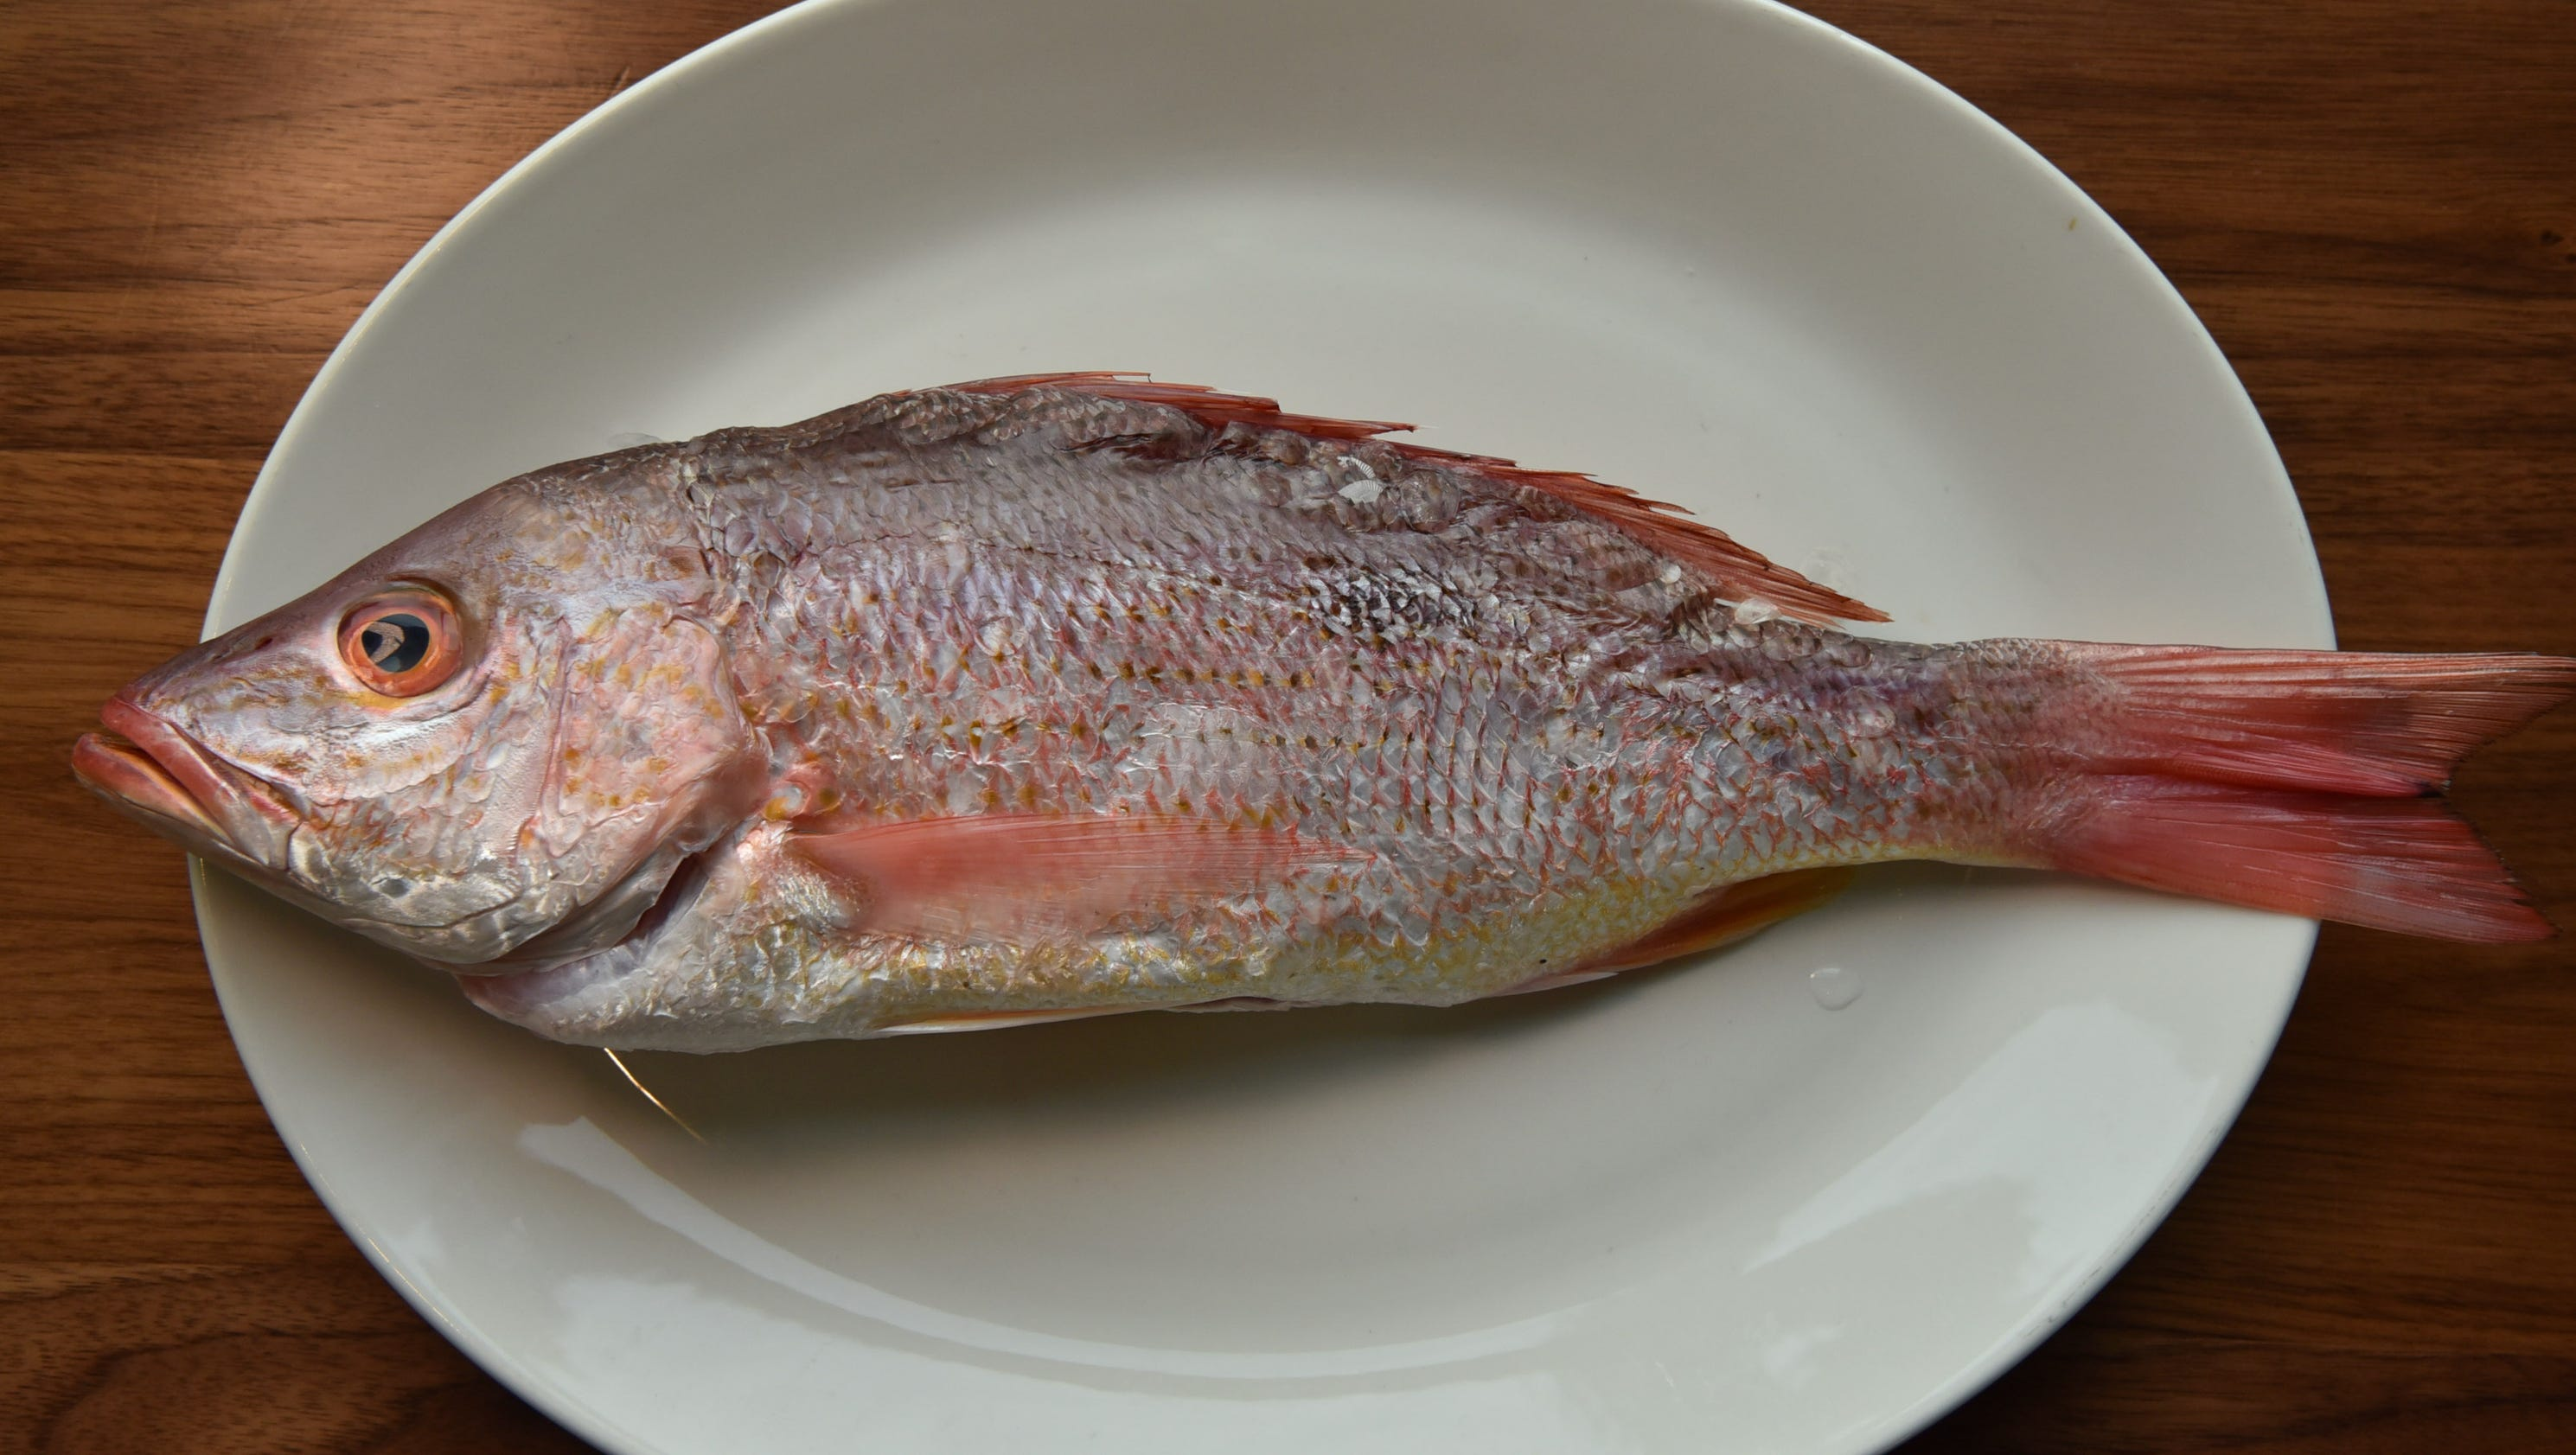 Food Network Red Snapper